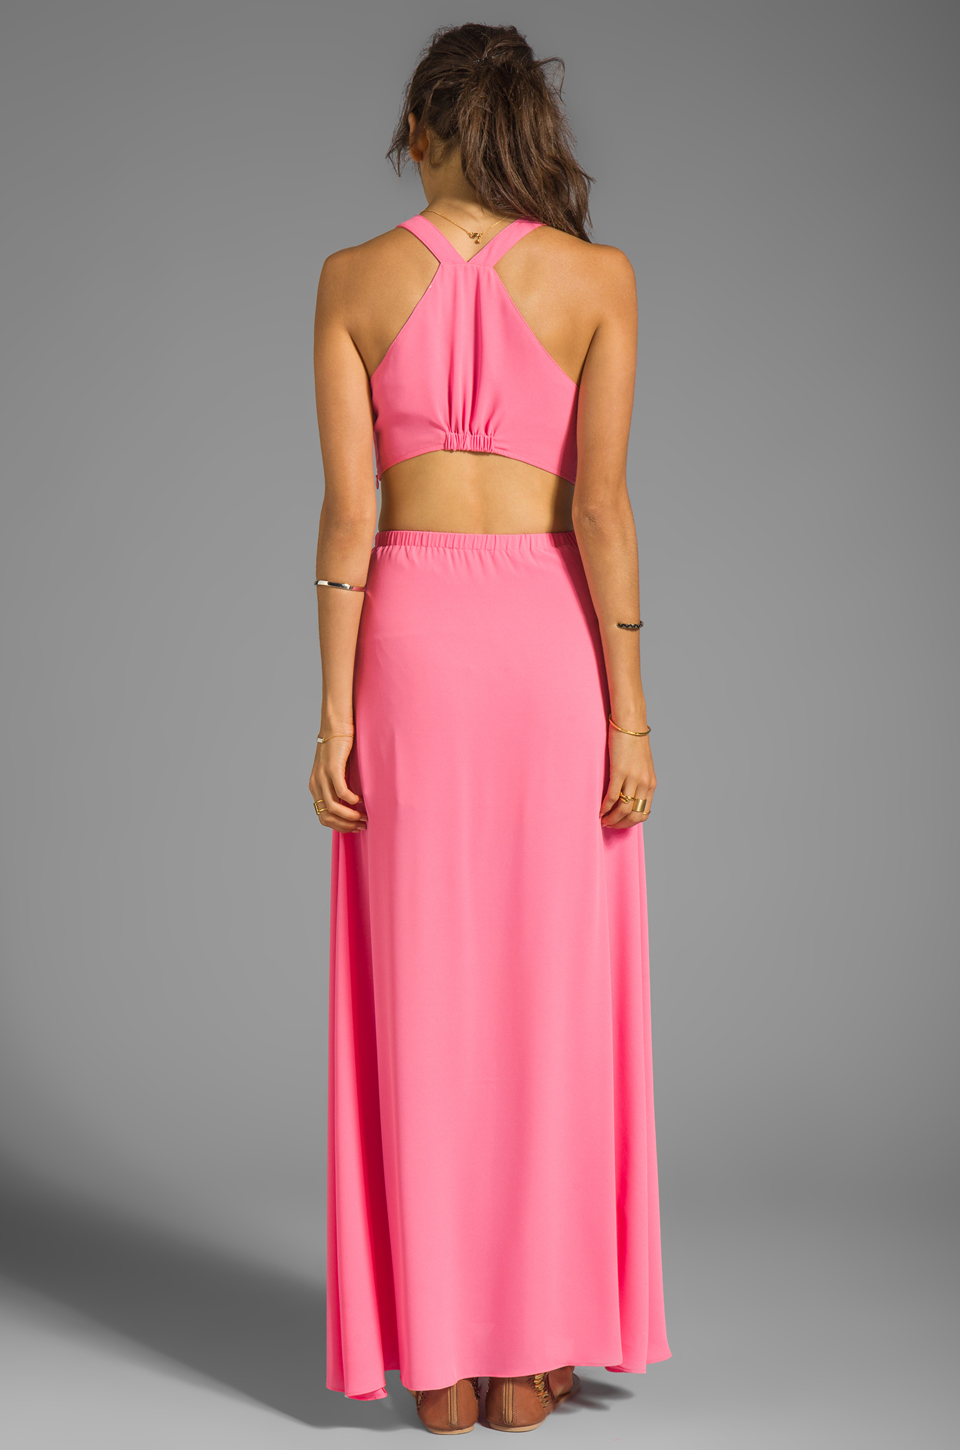 Lovers + Friends Look of Love Dress in Pink